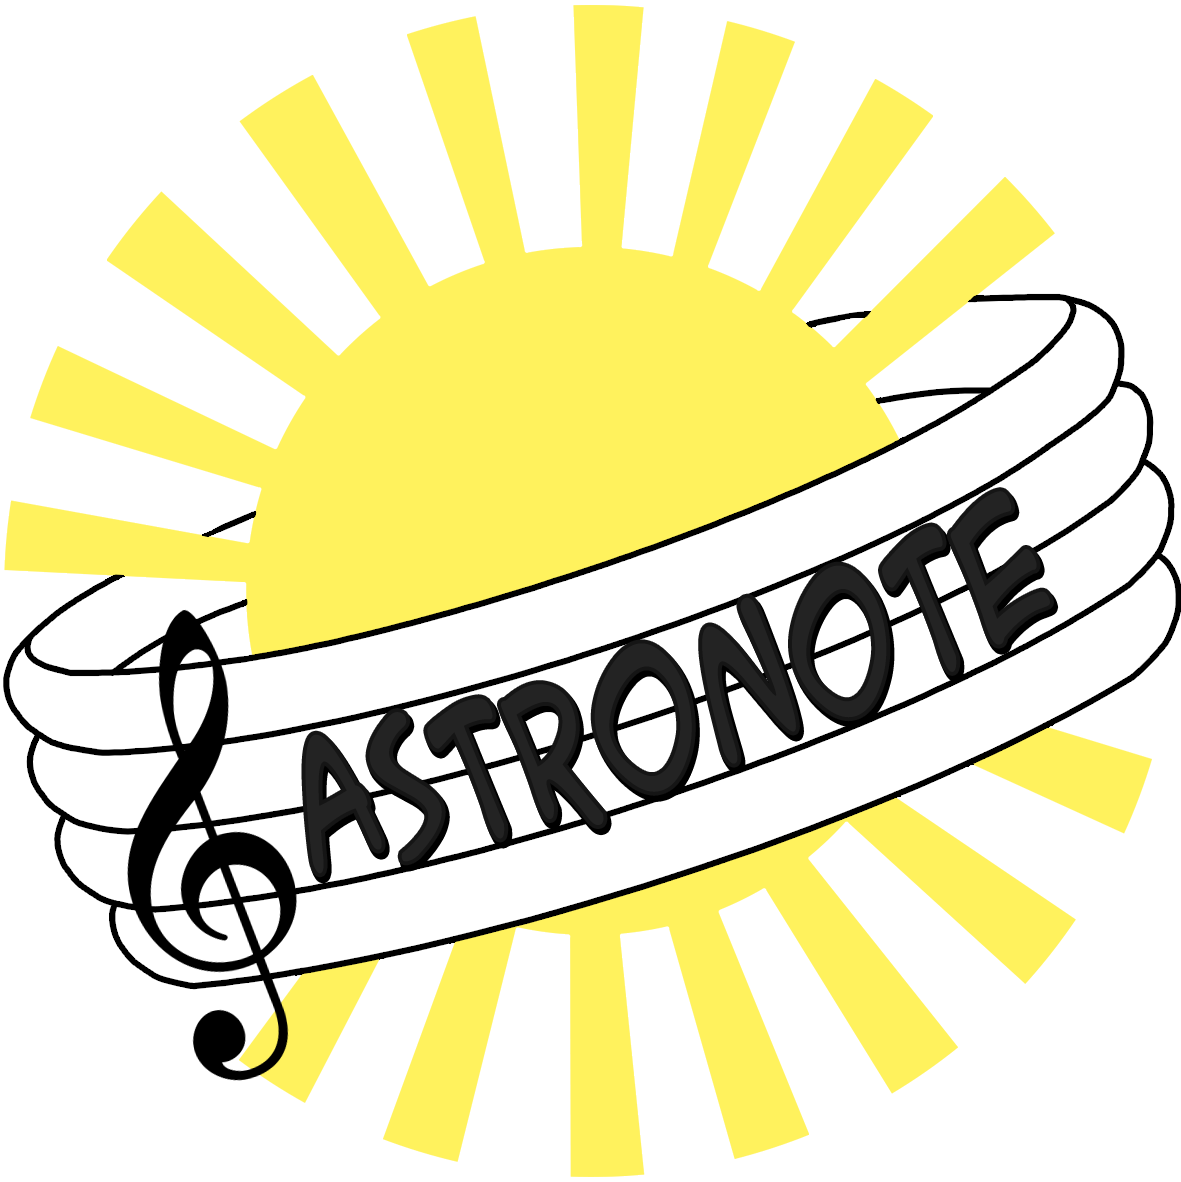 ASTRONOTE